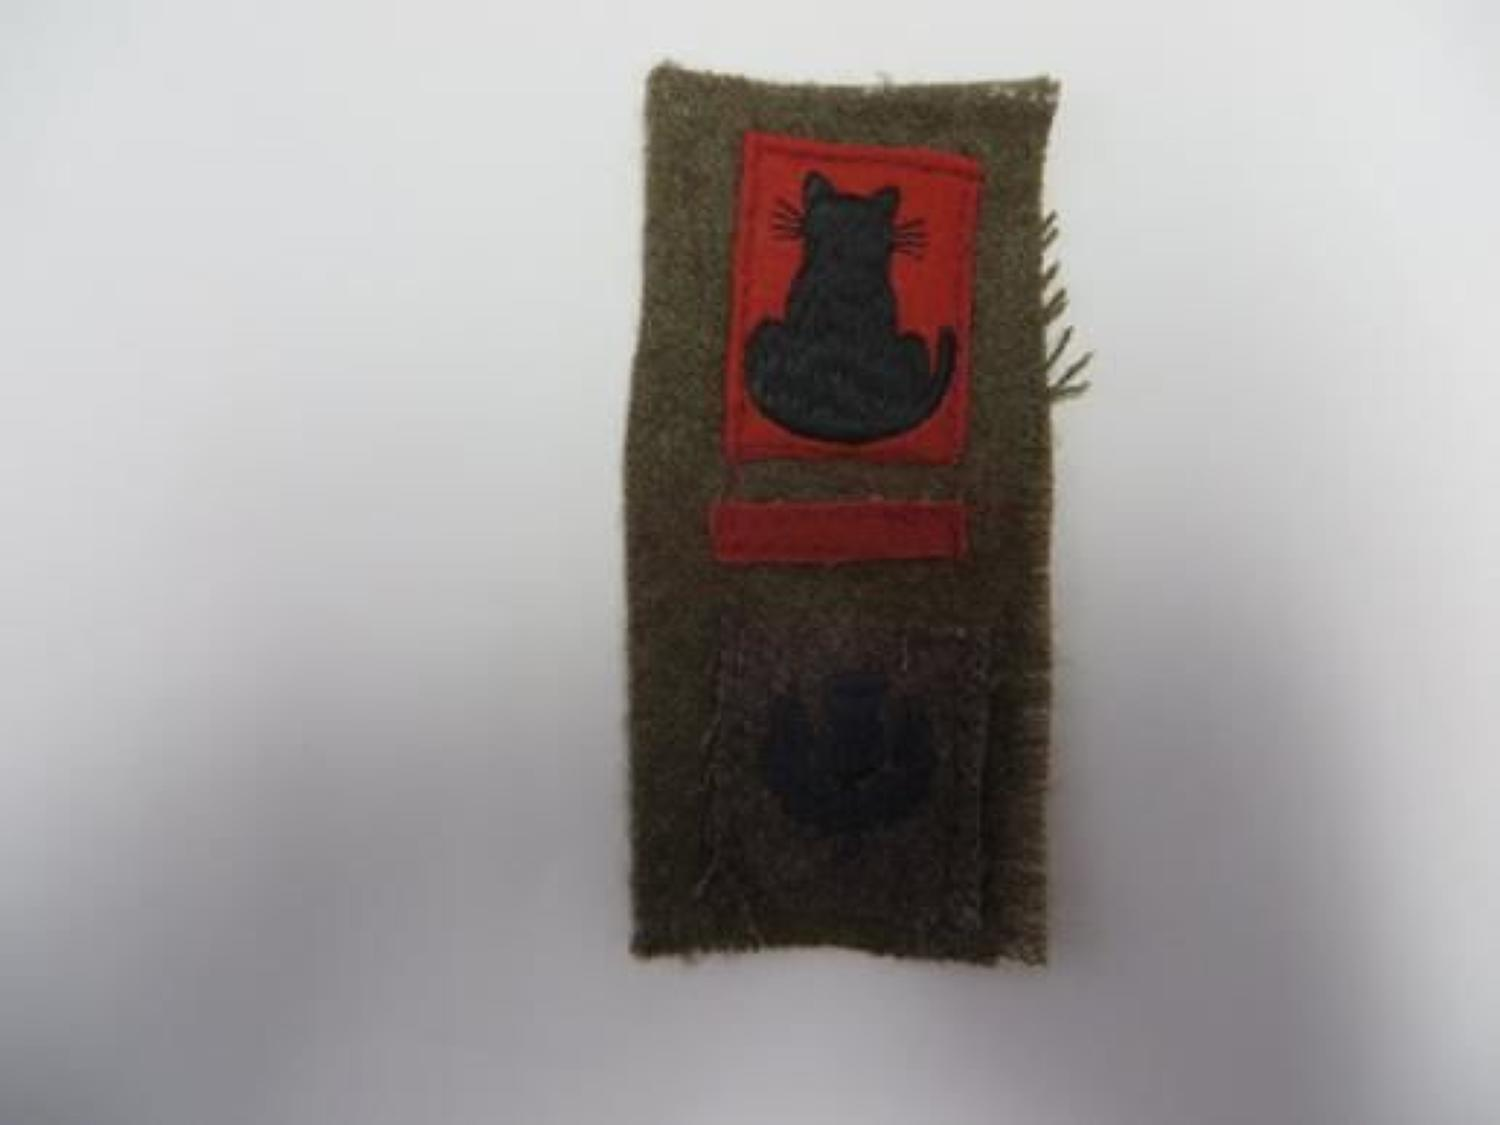 56th Infantry Division London Scottish Battle Patch